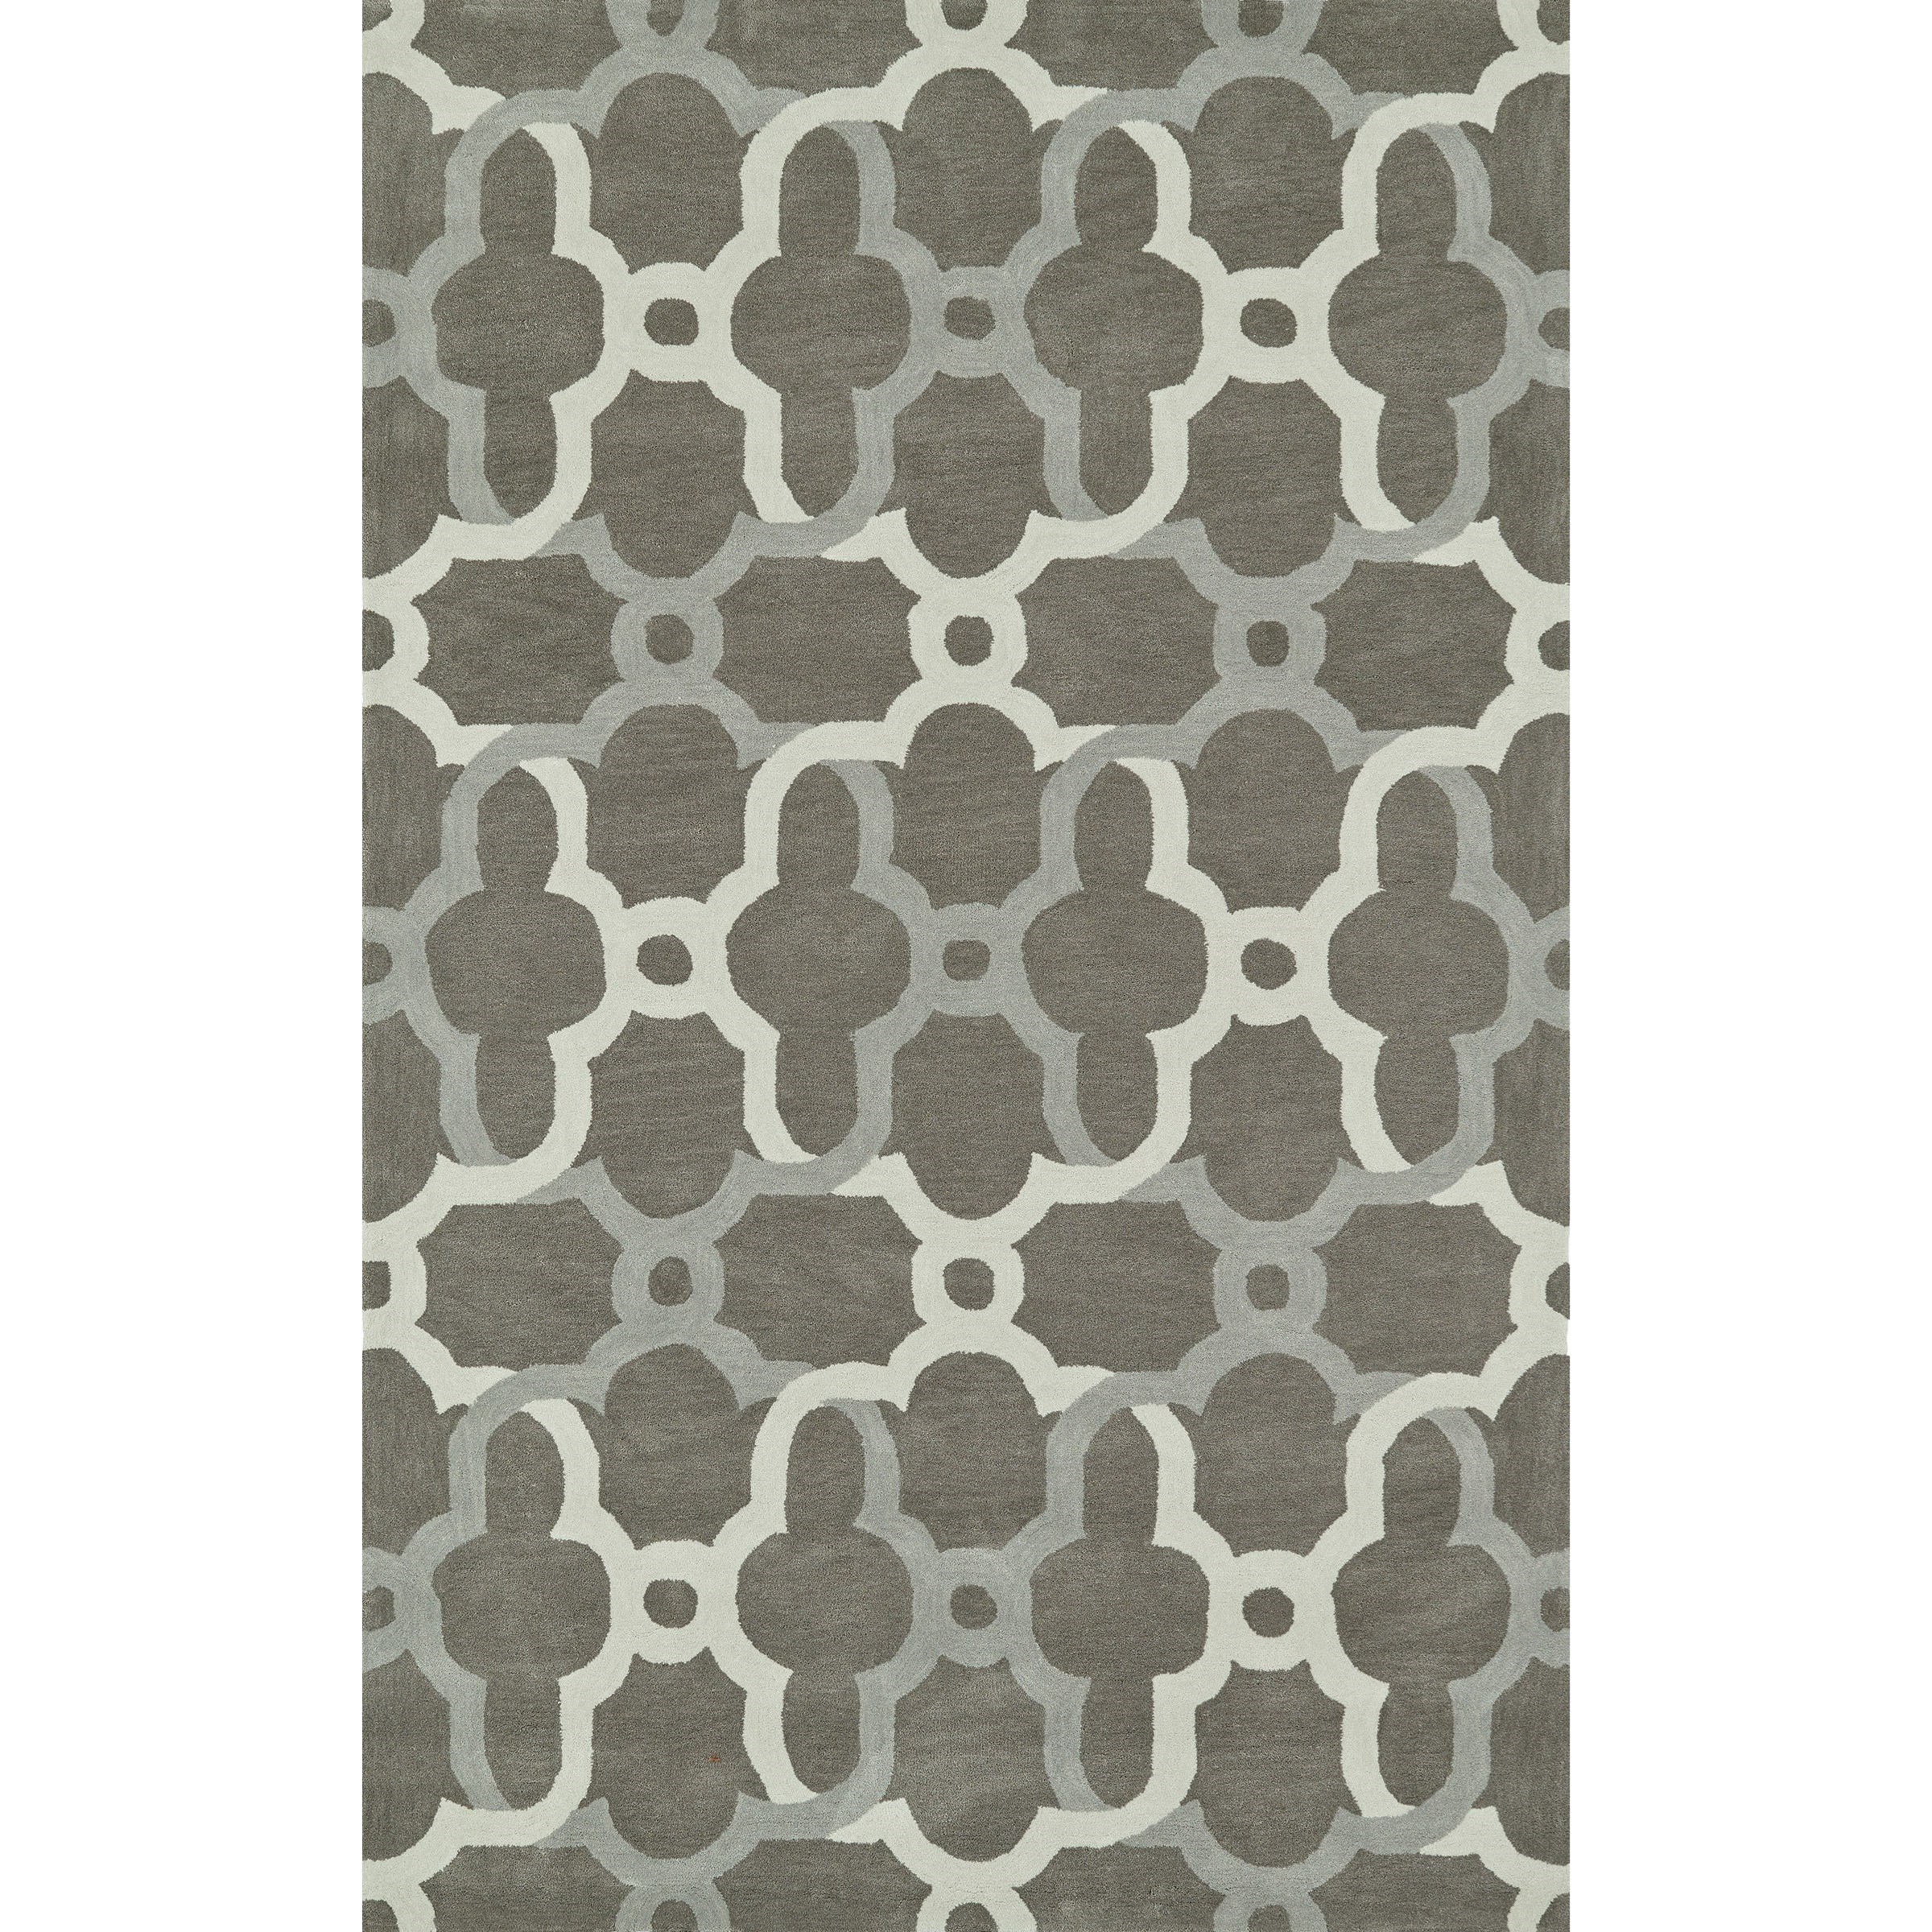 Journey Pewter 8' x 10' Rug by Dalyn at Fashion Furniture